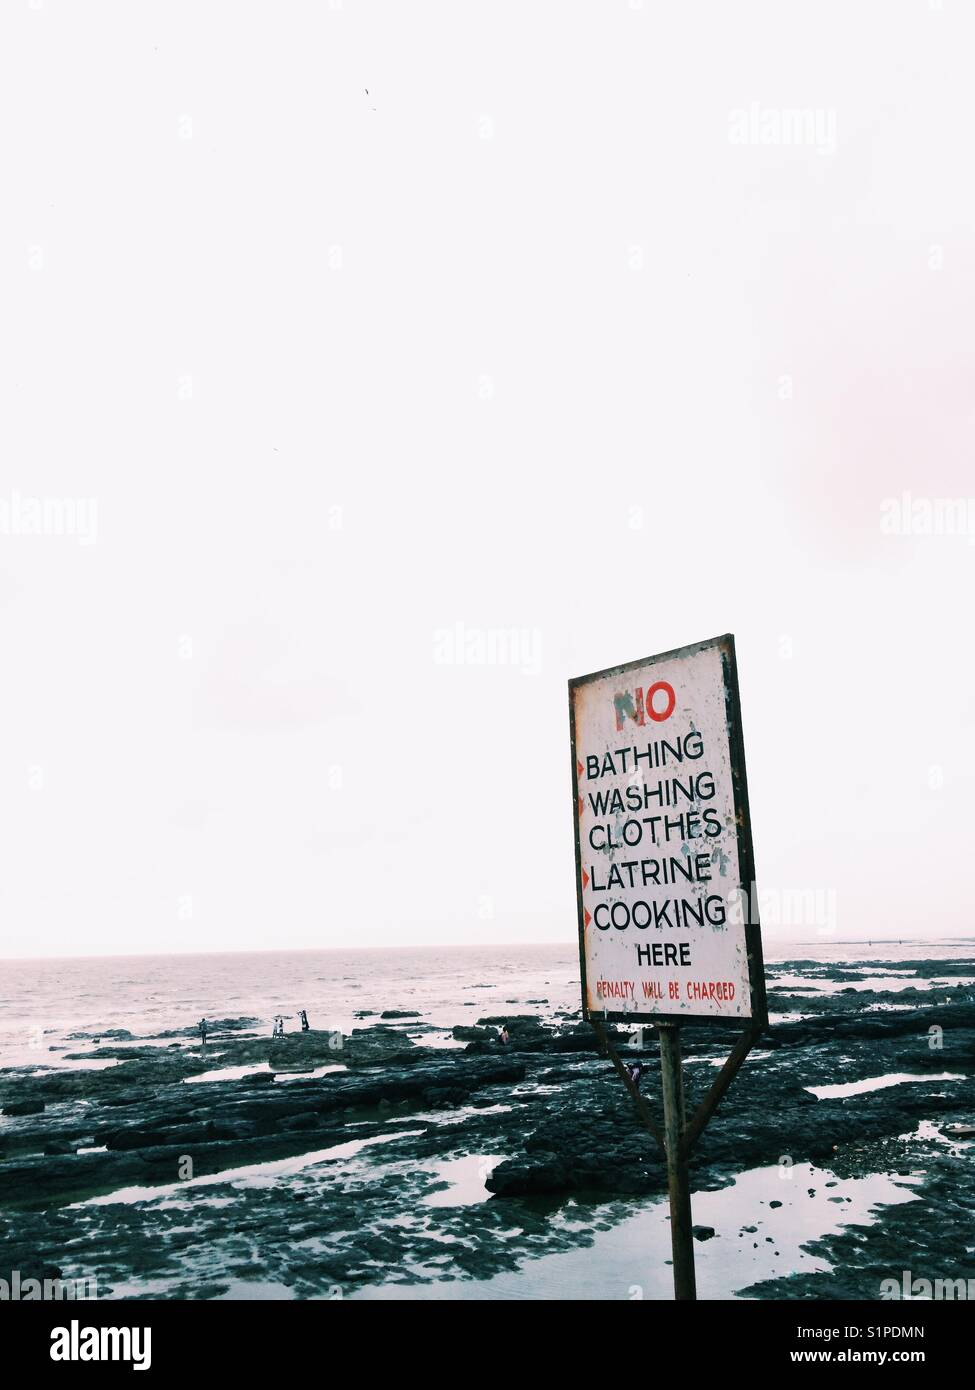 Beach signs India - Stock Image